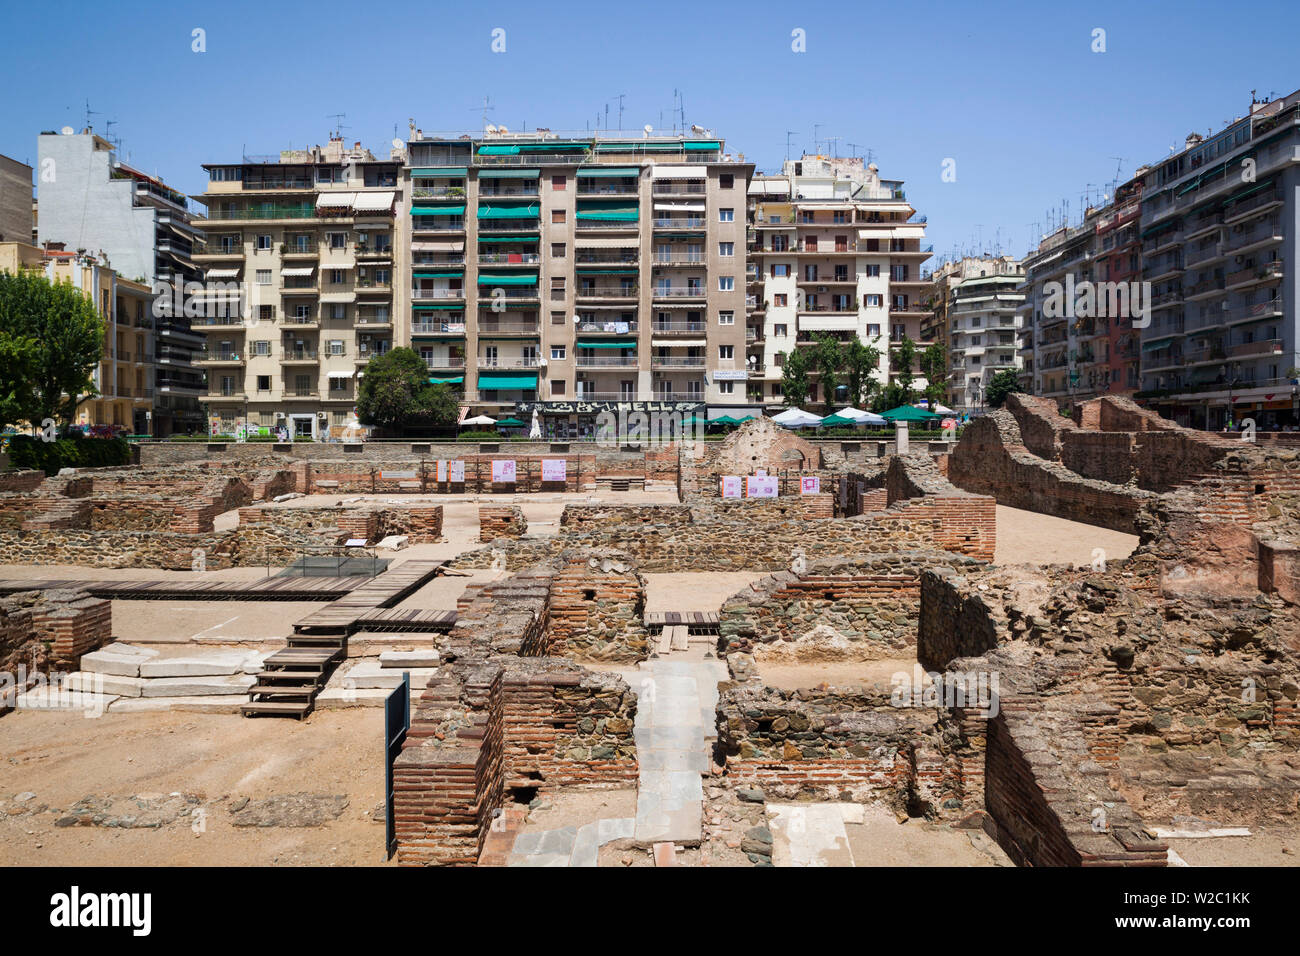 Greece, Central Macedonia Region, Thessaloniki, ruins of the Palace of Galerius - Stock Image